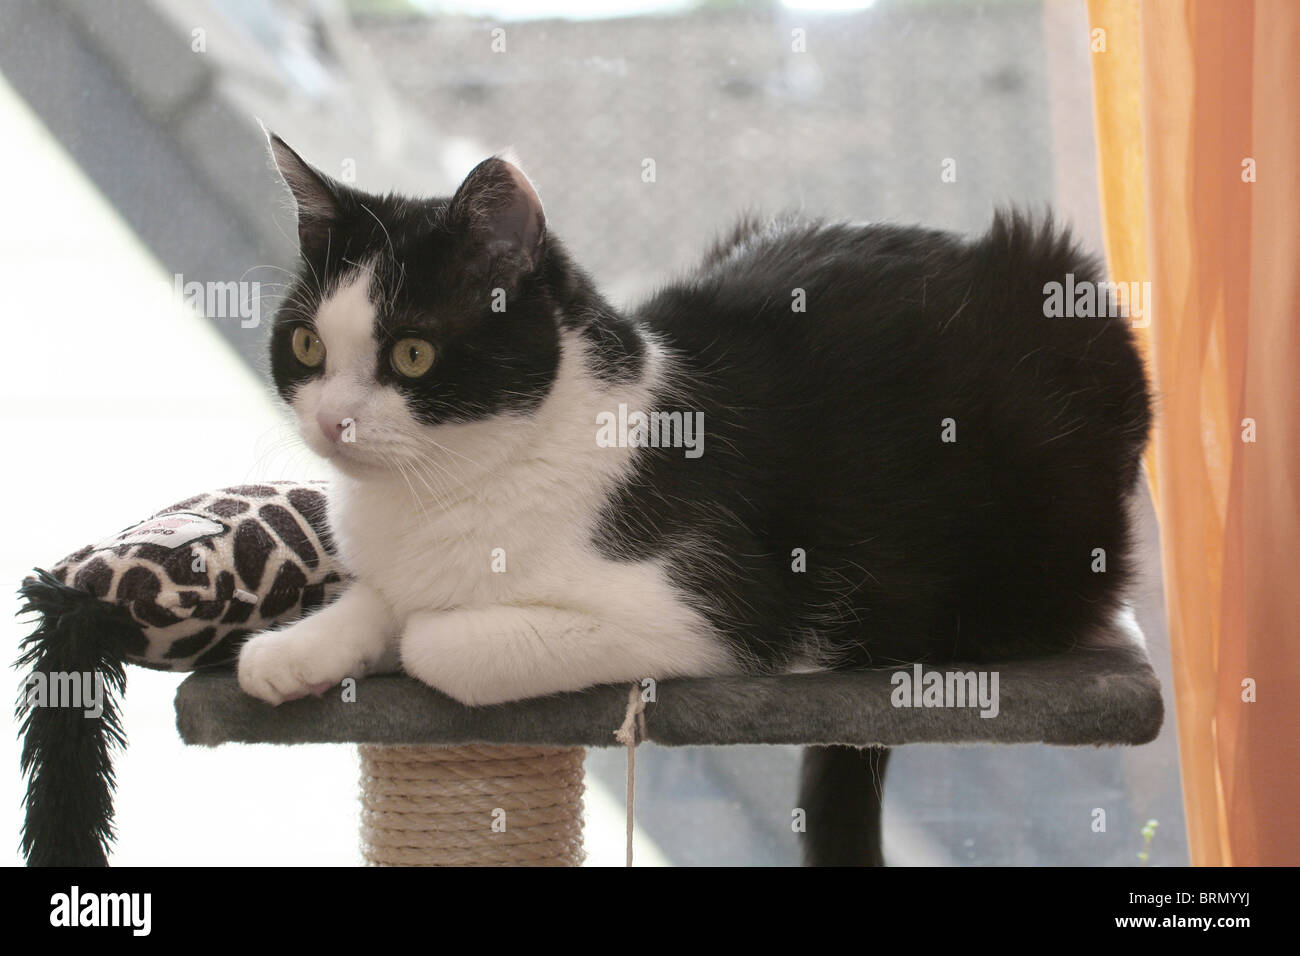 Domestic Cat (Felis silvestris, Felis catus). 11 year old tomcat lying on a scratching post. - Stock Image